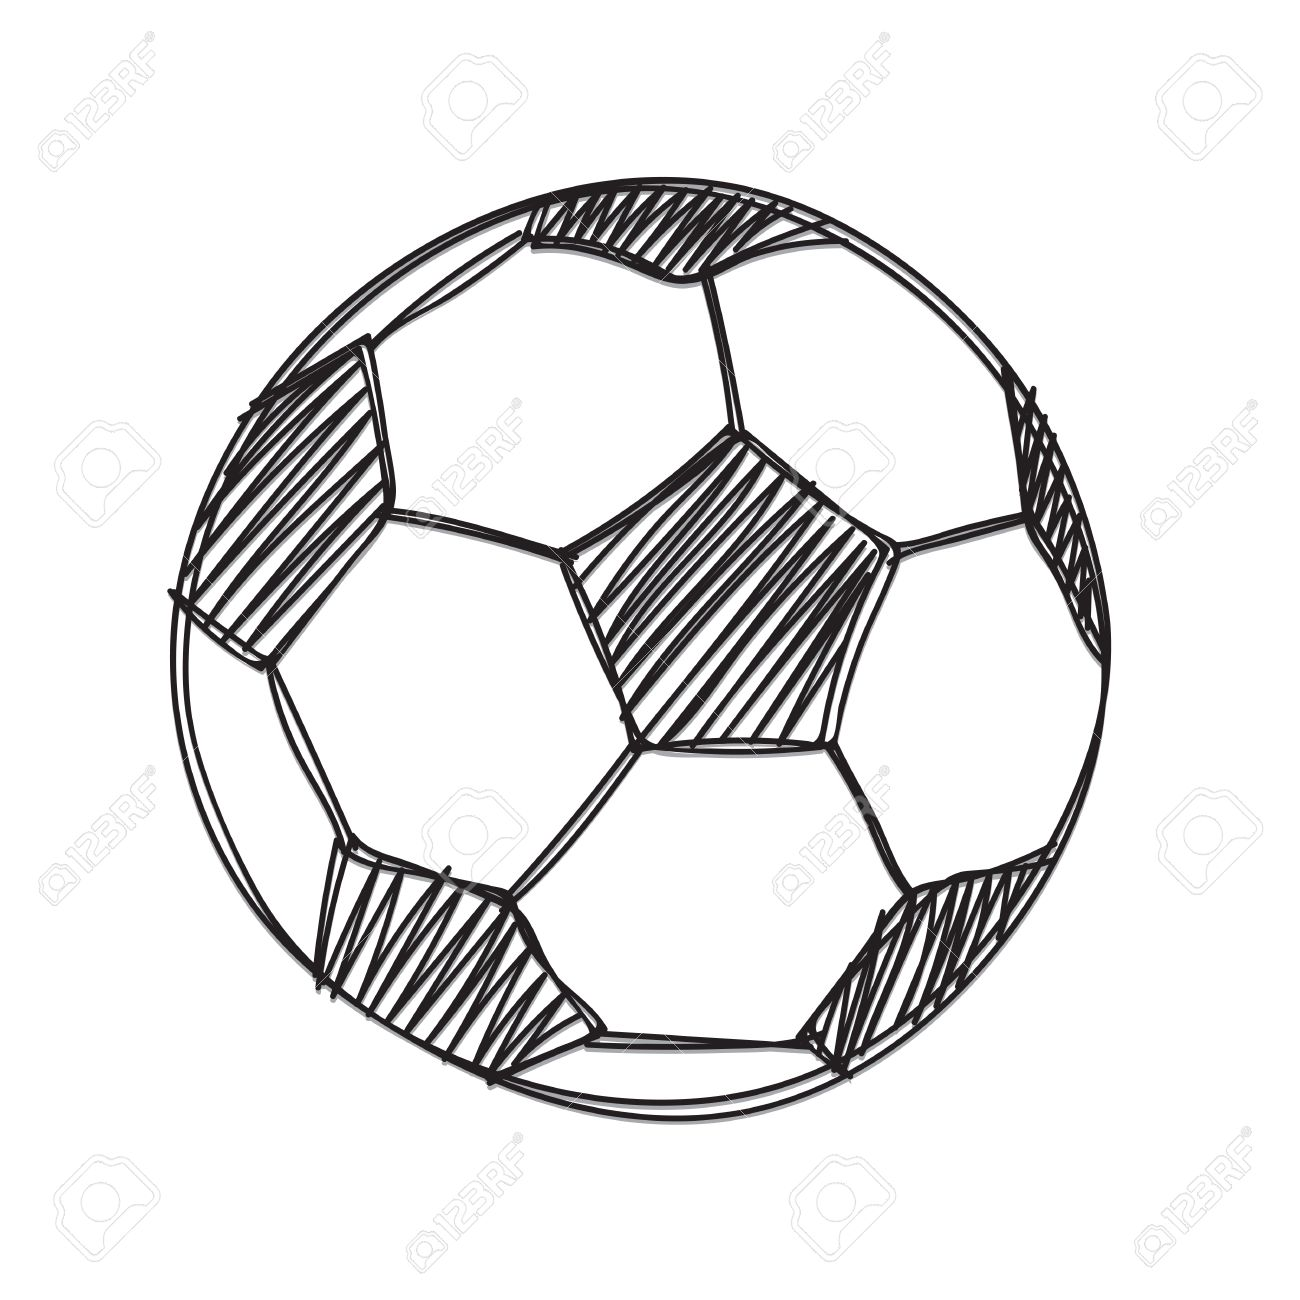 1300x1300 Hand Draw Football Ball Isolated Illustration On White Background